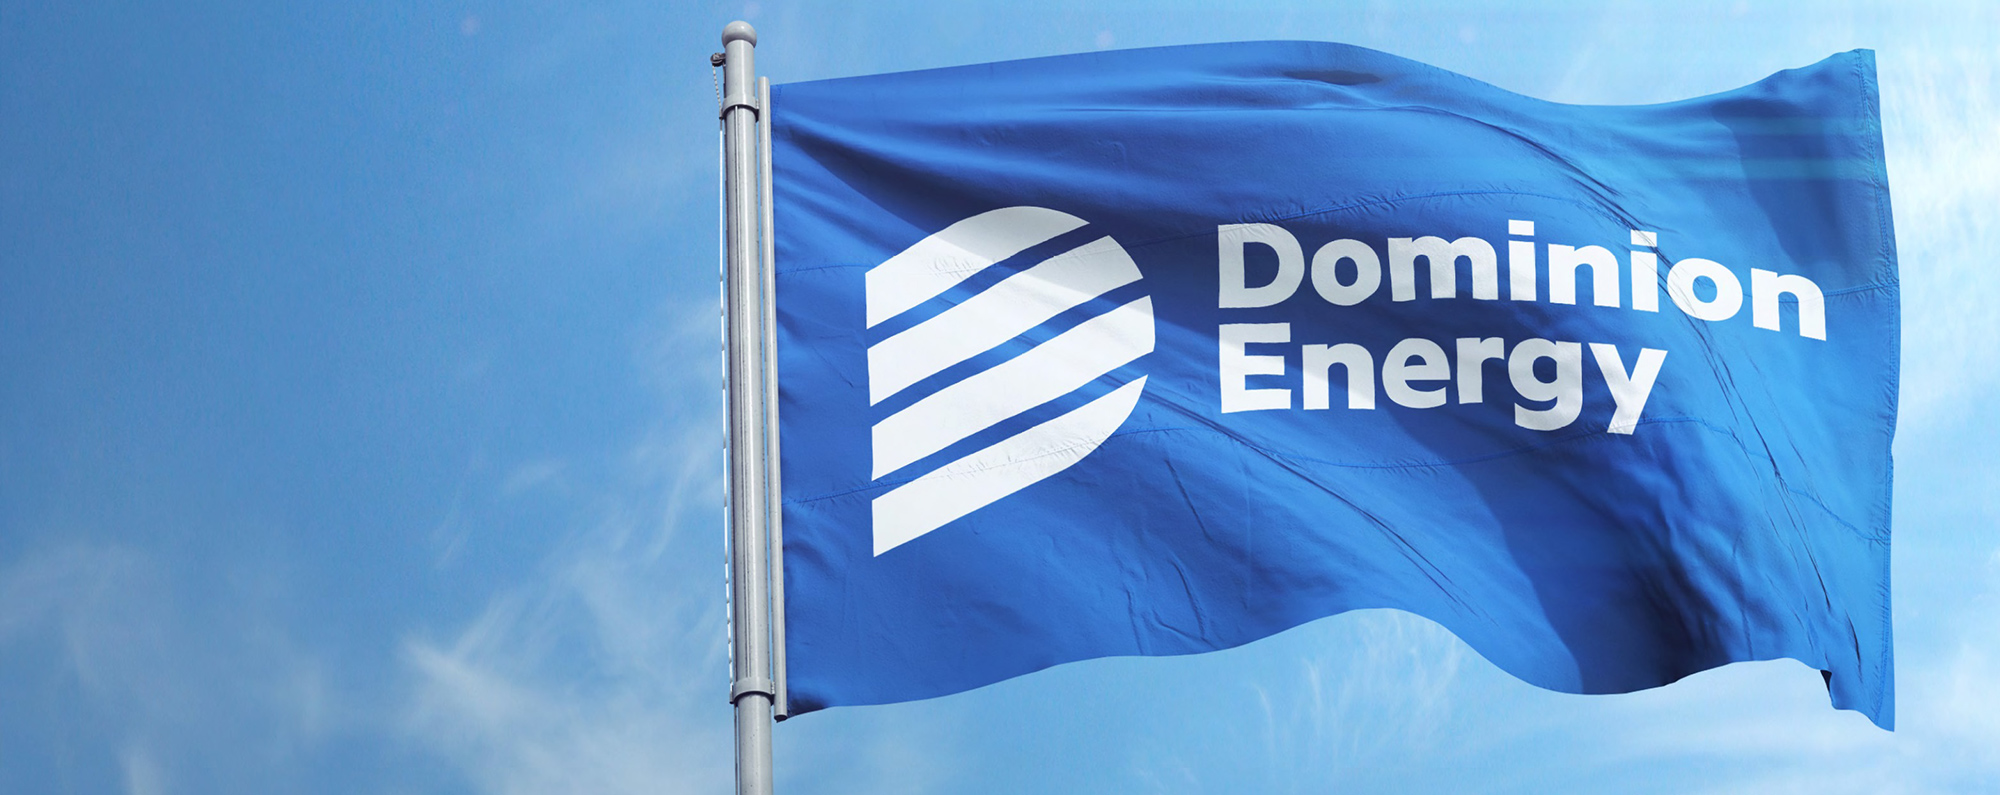 Introducing Dominion Energy